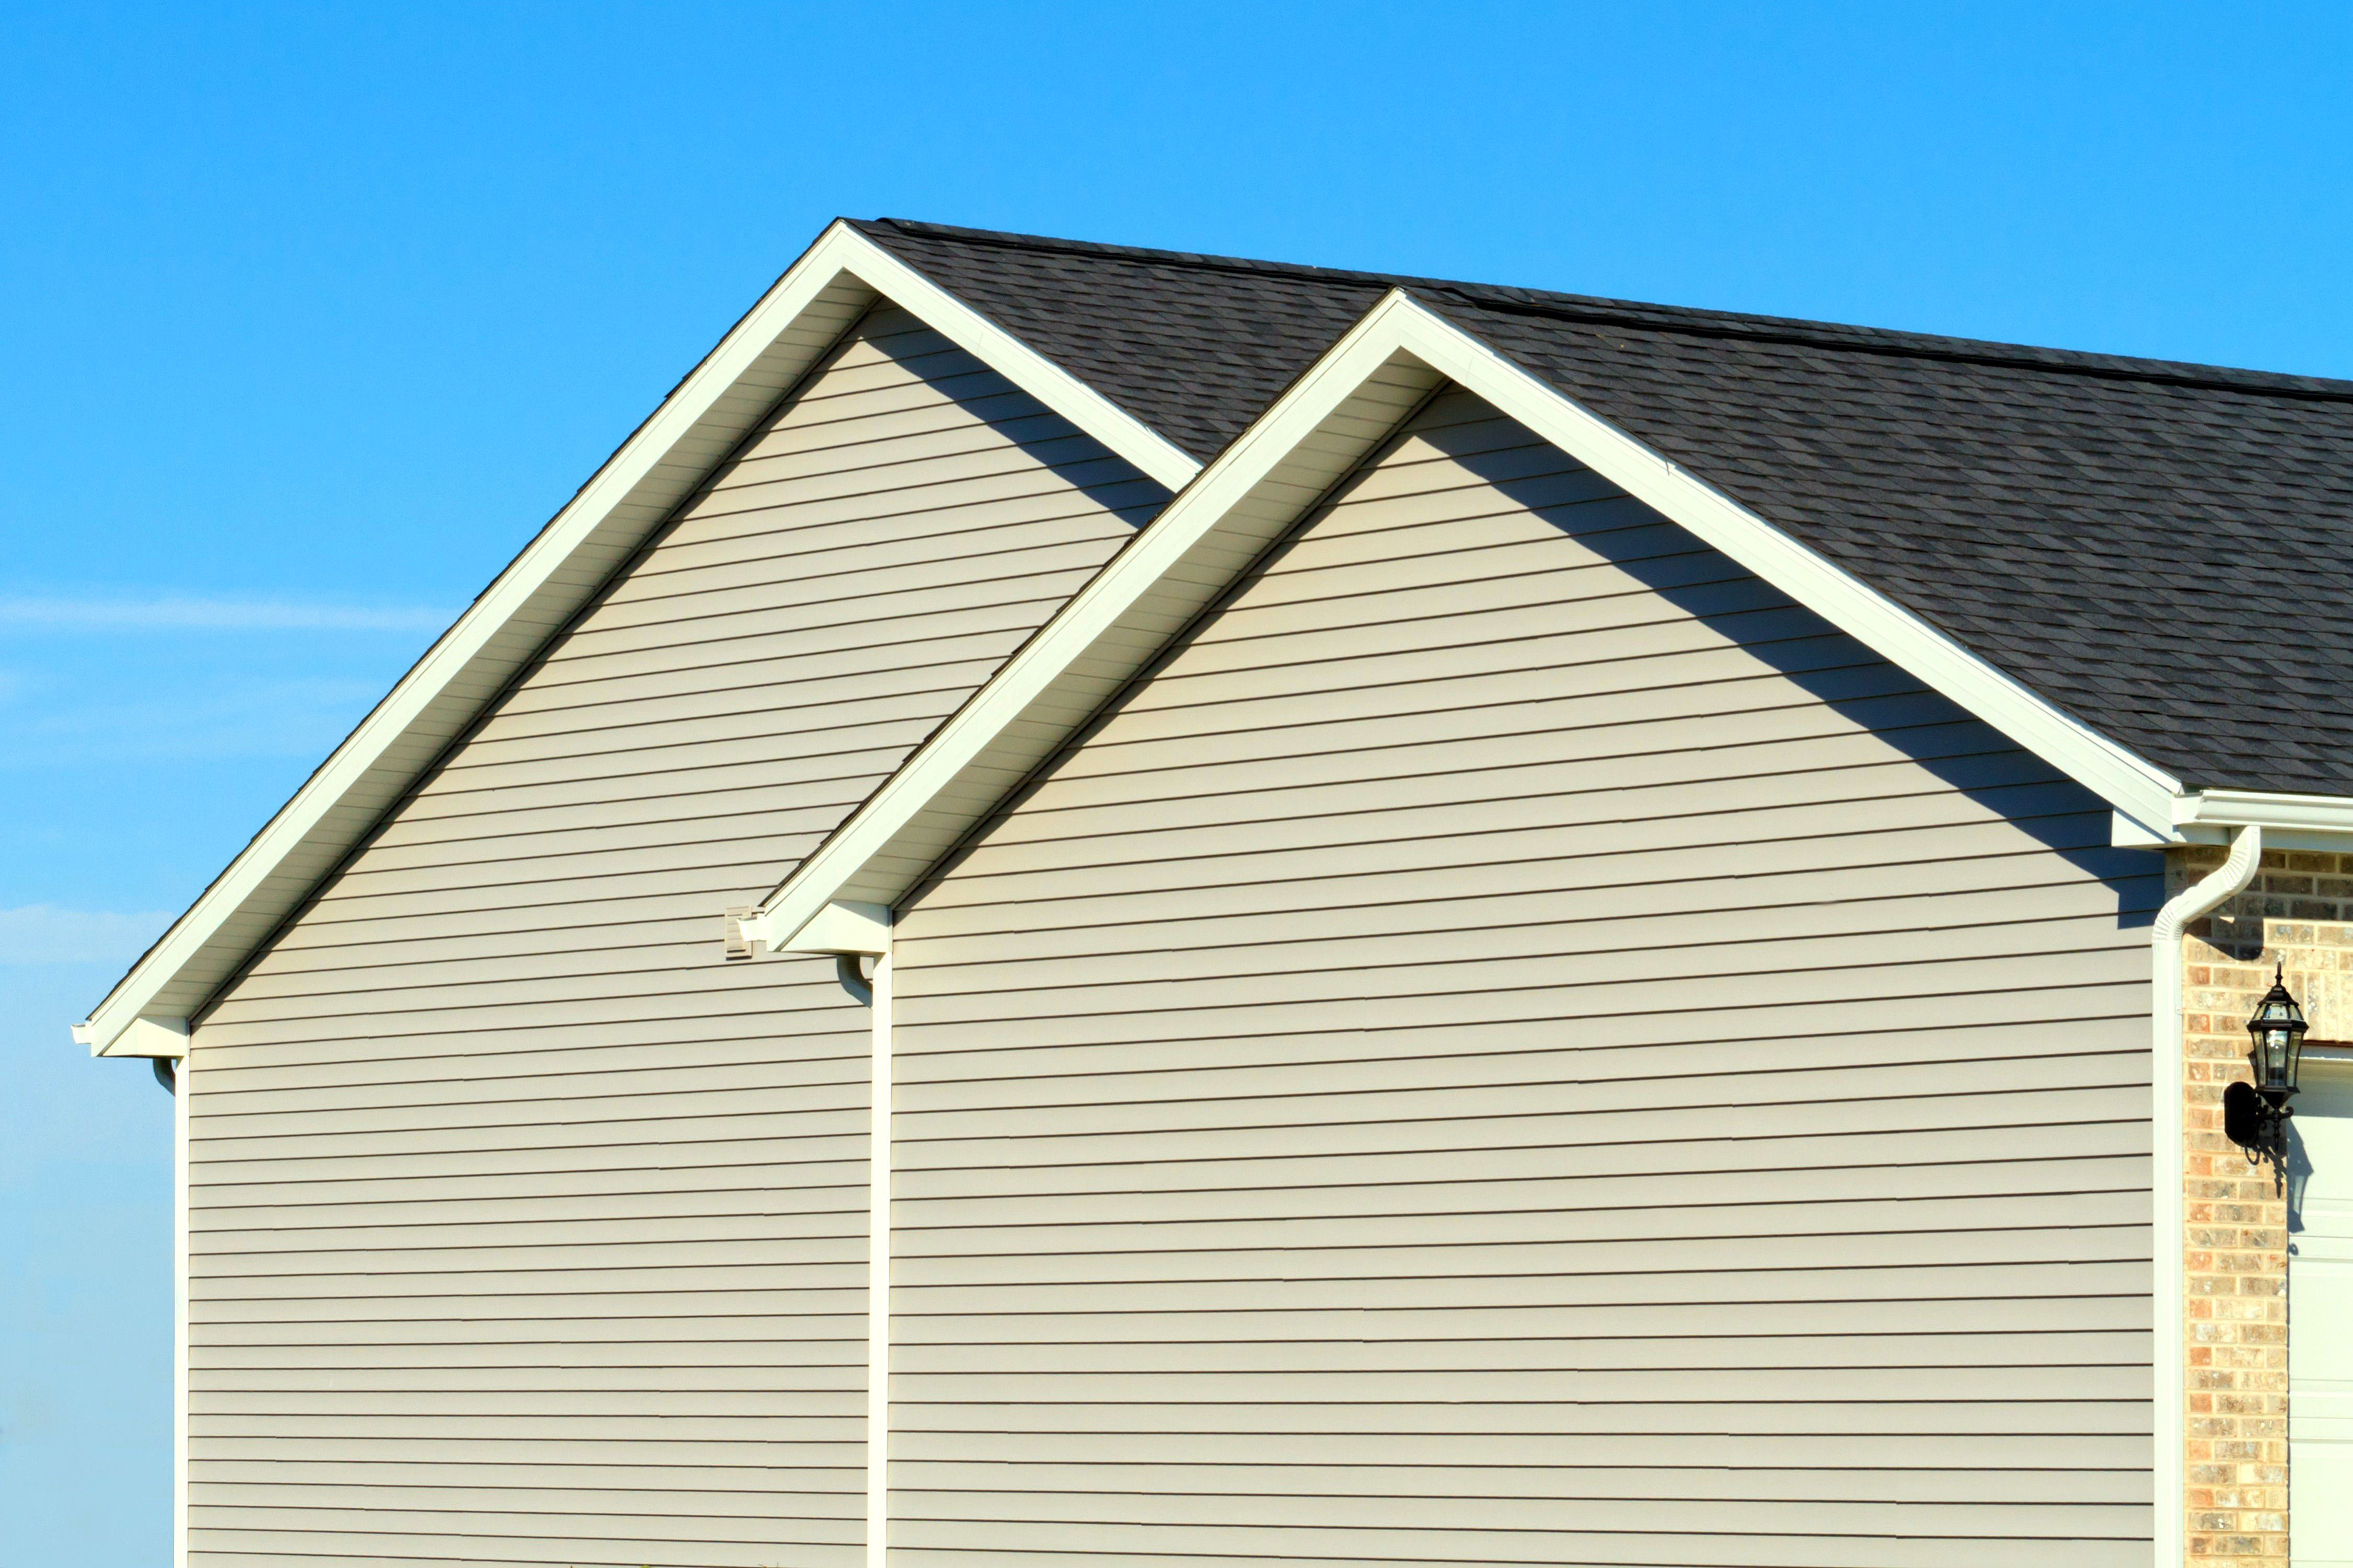 While You Making Decision To For Roofing Then Finding Roofers Is Troublesome In Some Cases Check Out This L With Images Vinyl Siding Prices Vinyl Siding Vinyl Siding Cost